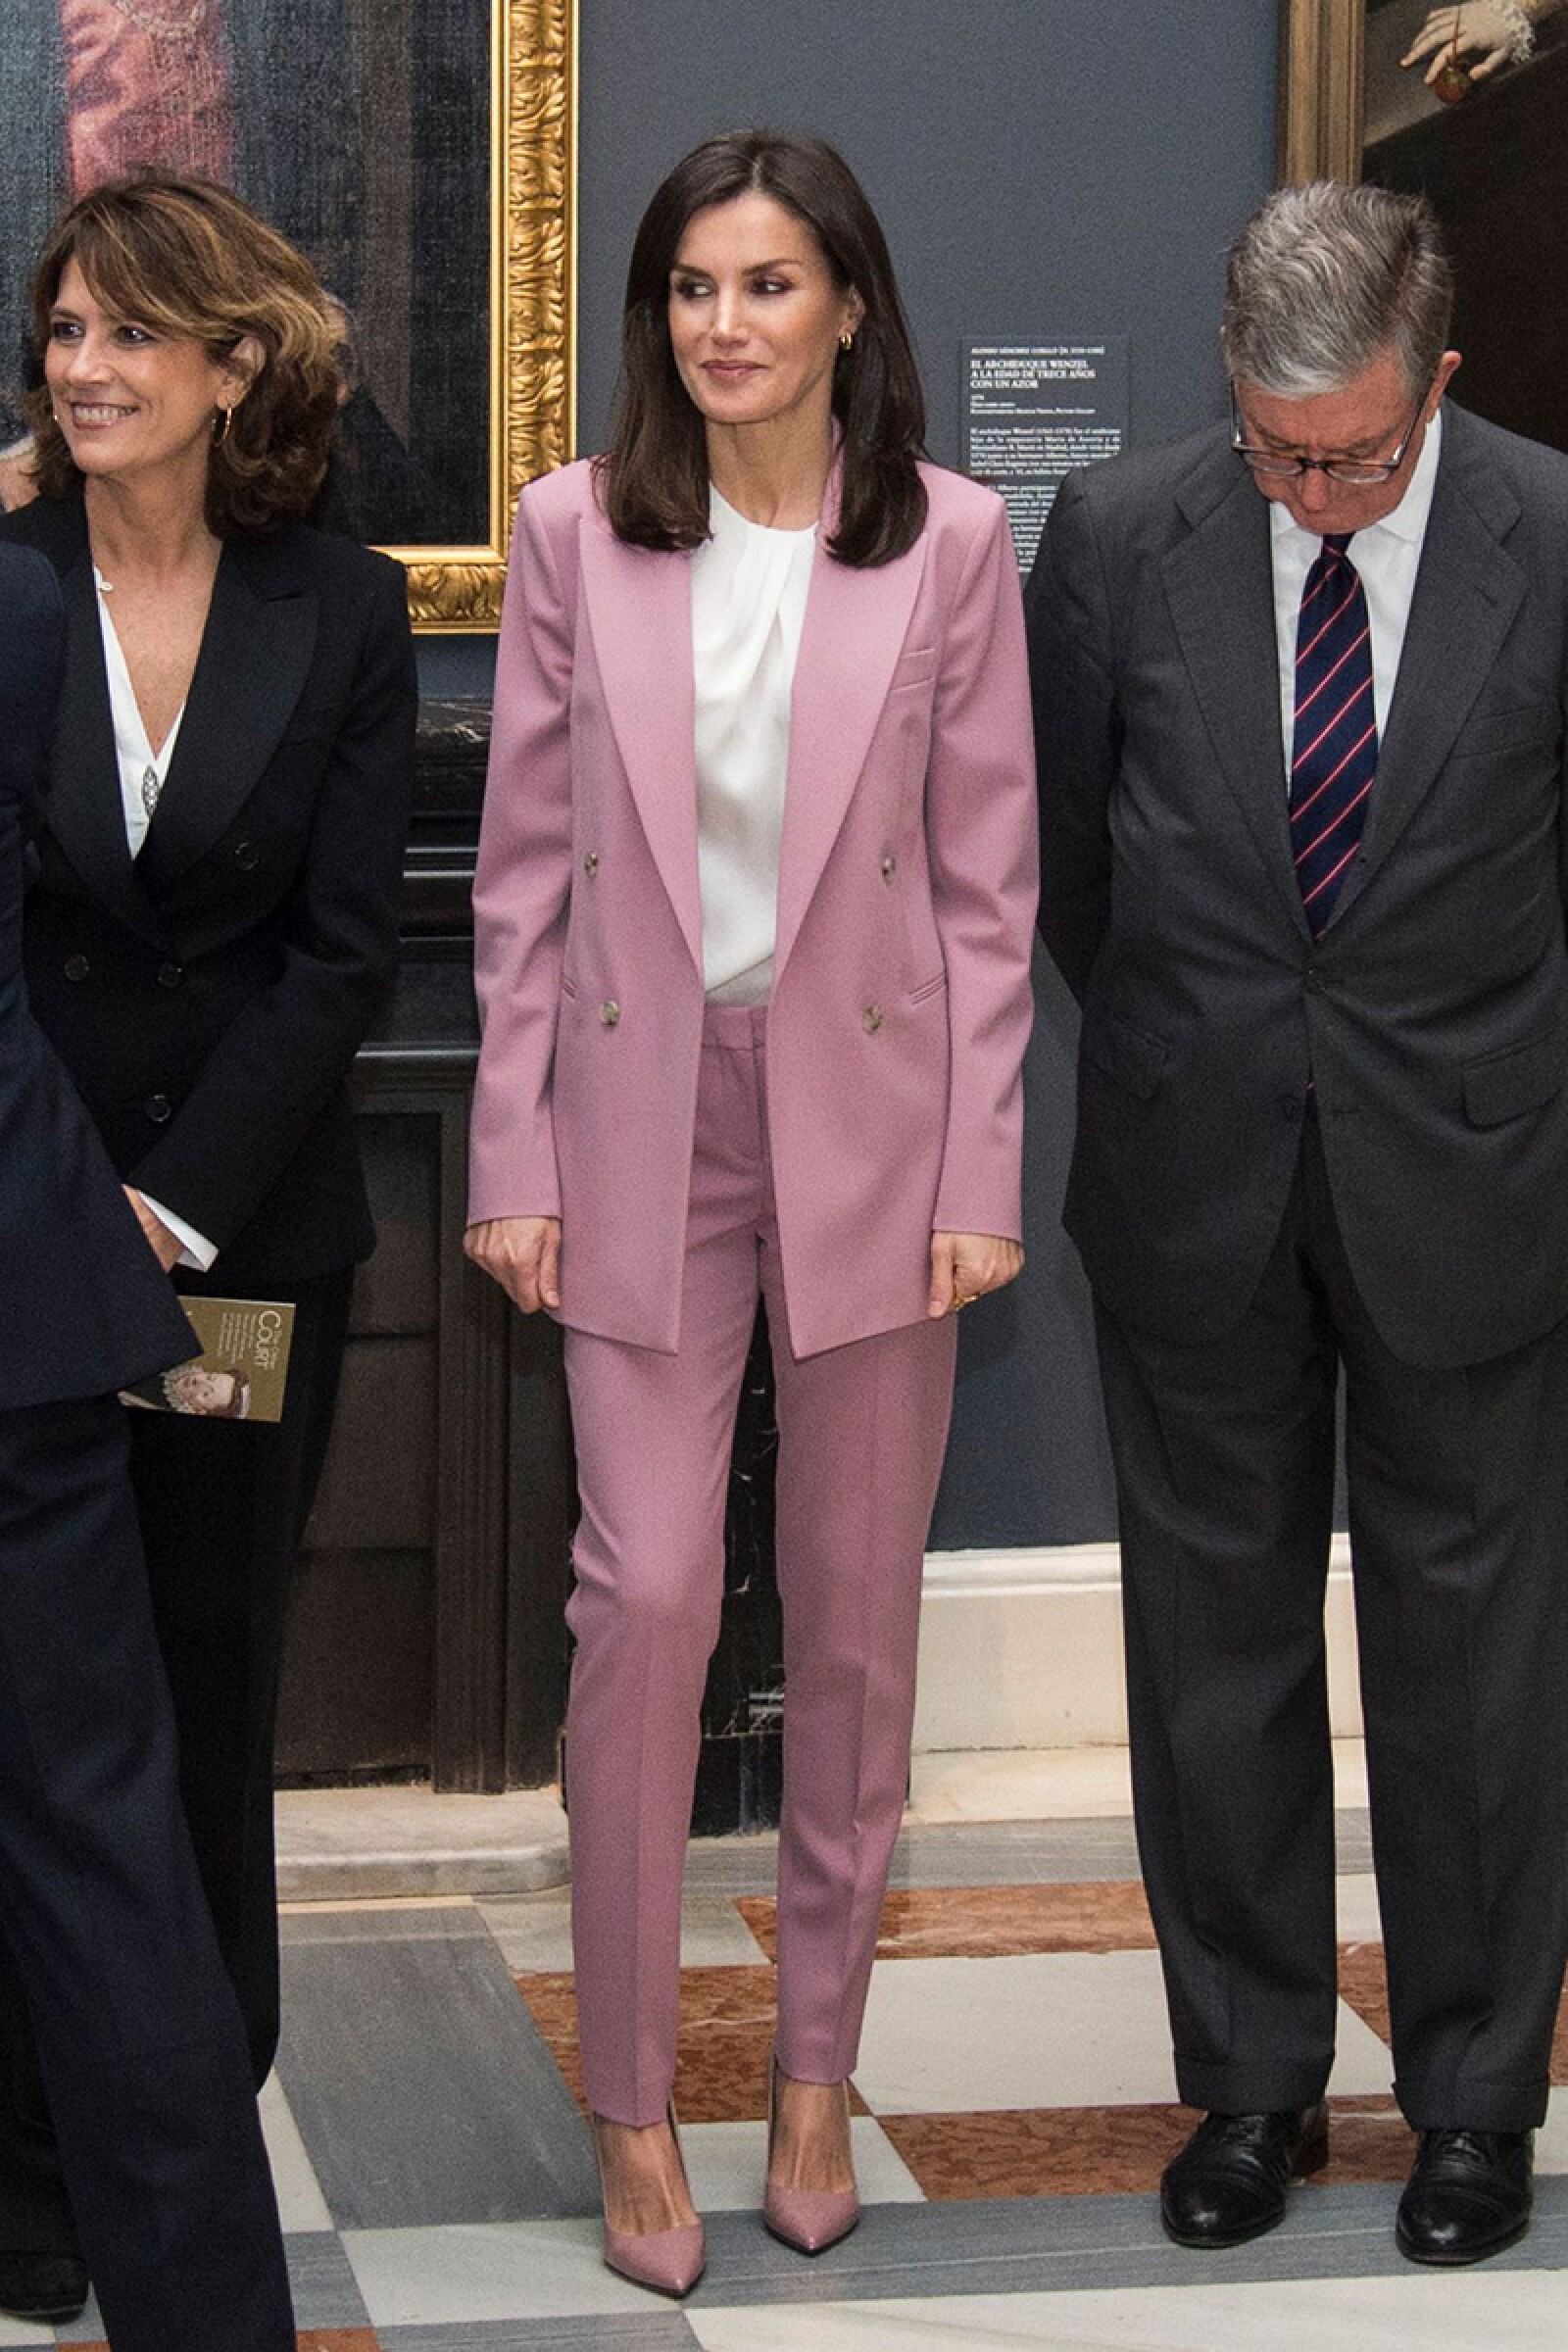 Queen Letizia visits an exhibition at the Royal Palace, Madrid, Spain - 17 Dec 2019